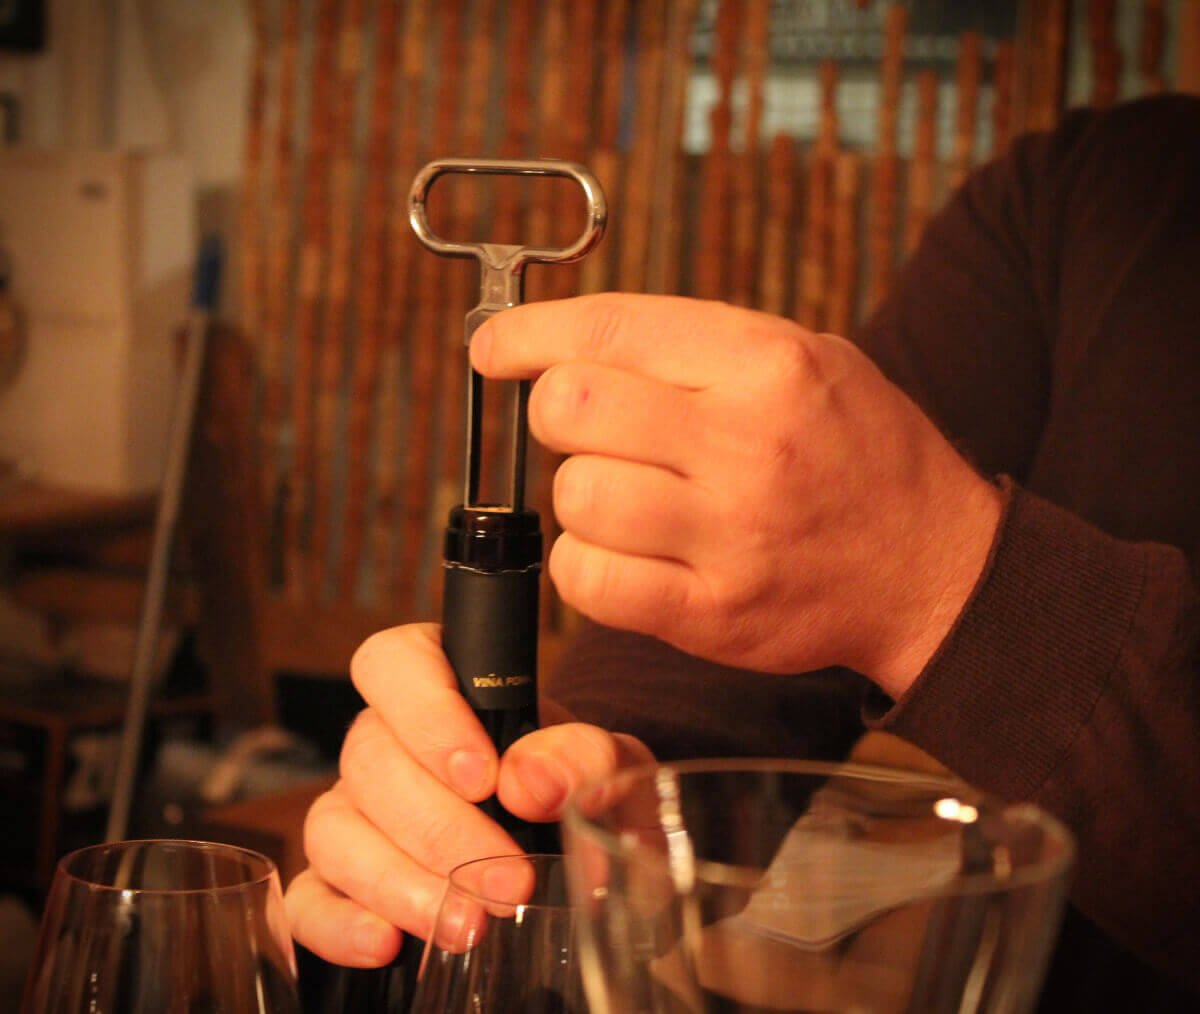 """The """"Ah, So"""" wine opener is also called the """"Butler's Thief."""" It opens a bottle of wine without leaving a mark on the cork - brilliant if you're clumsy.... or stealing! It makes a great show and tell moment at a dinner party, too."""